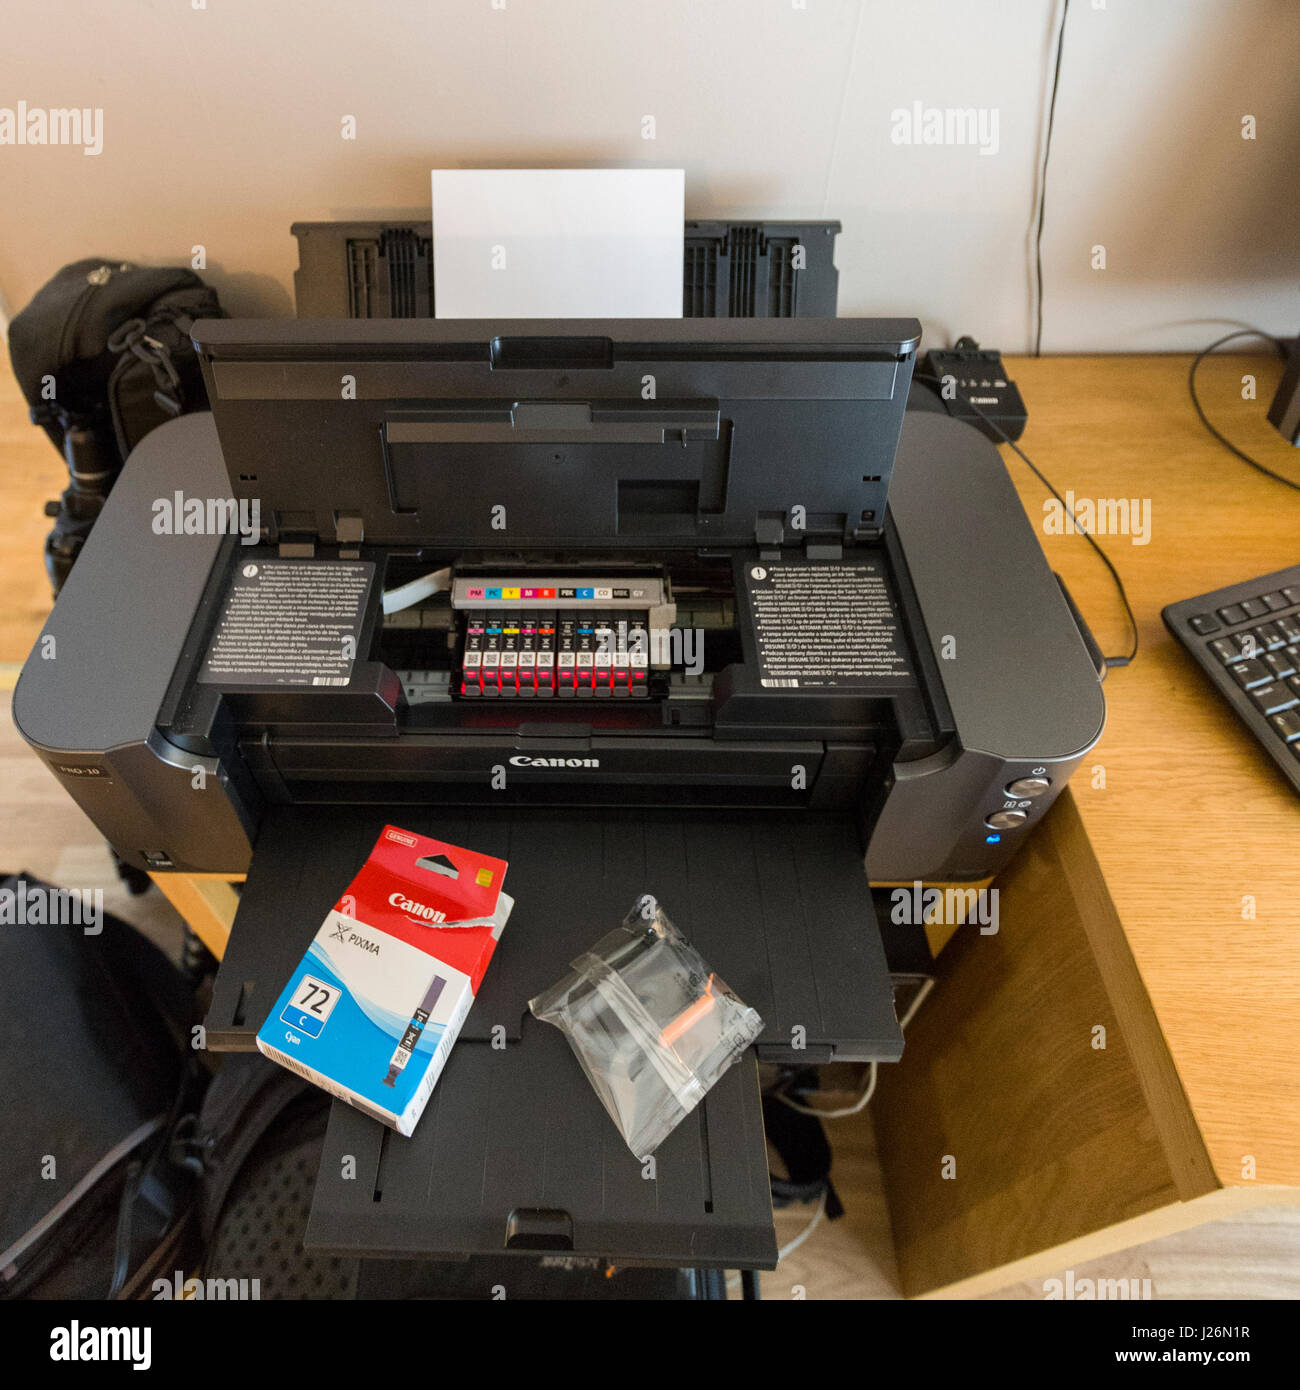 Replacing printer ink cartridge on Canon Pixma Pro-10 Model